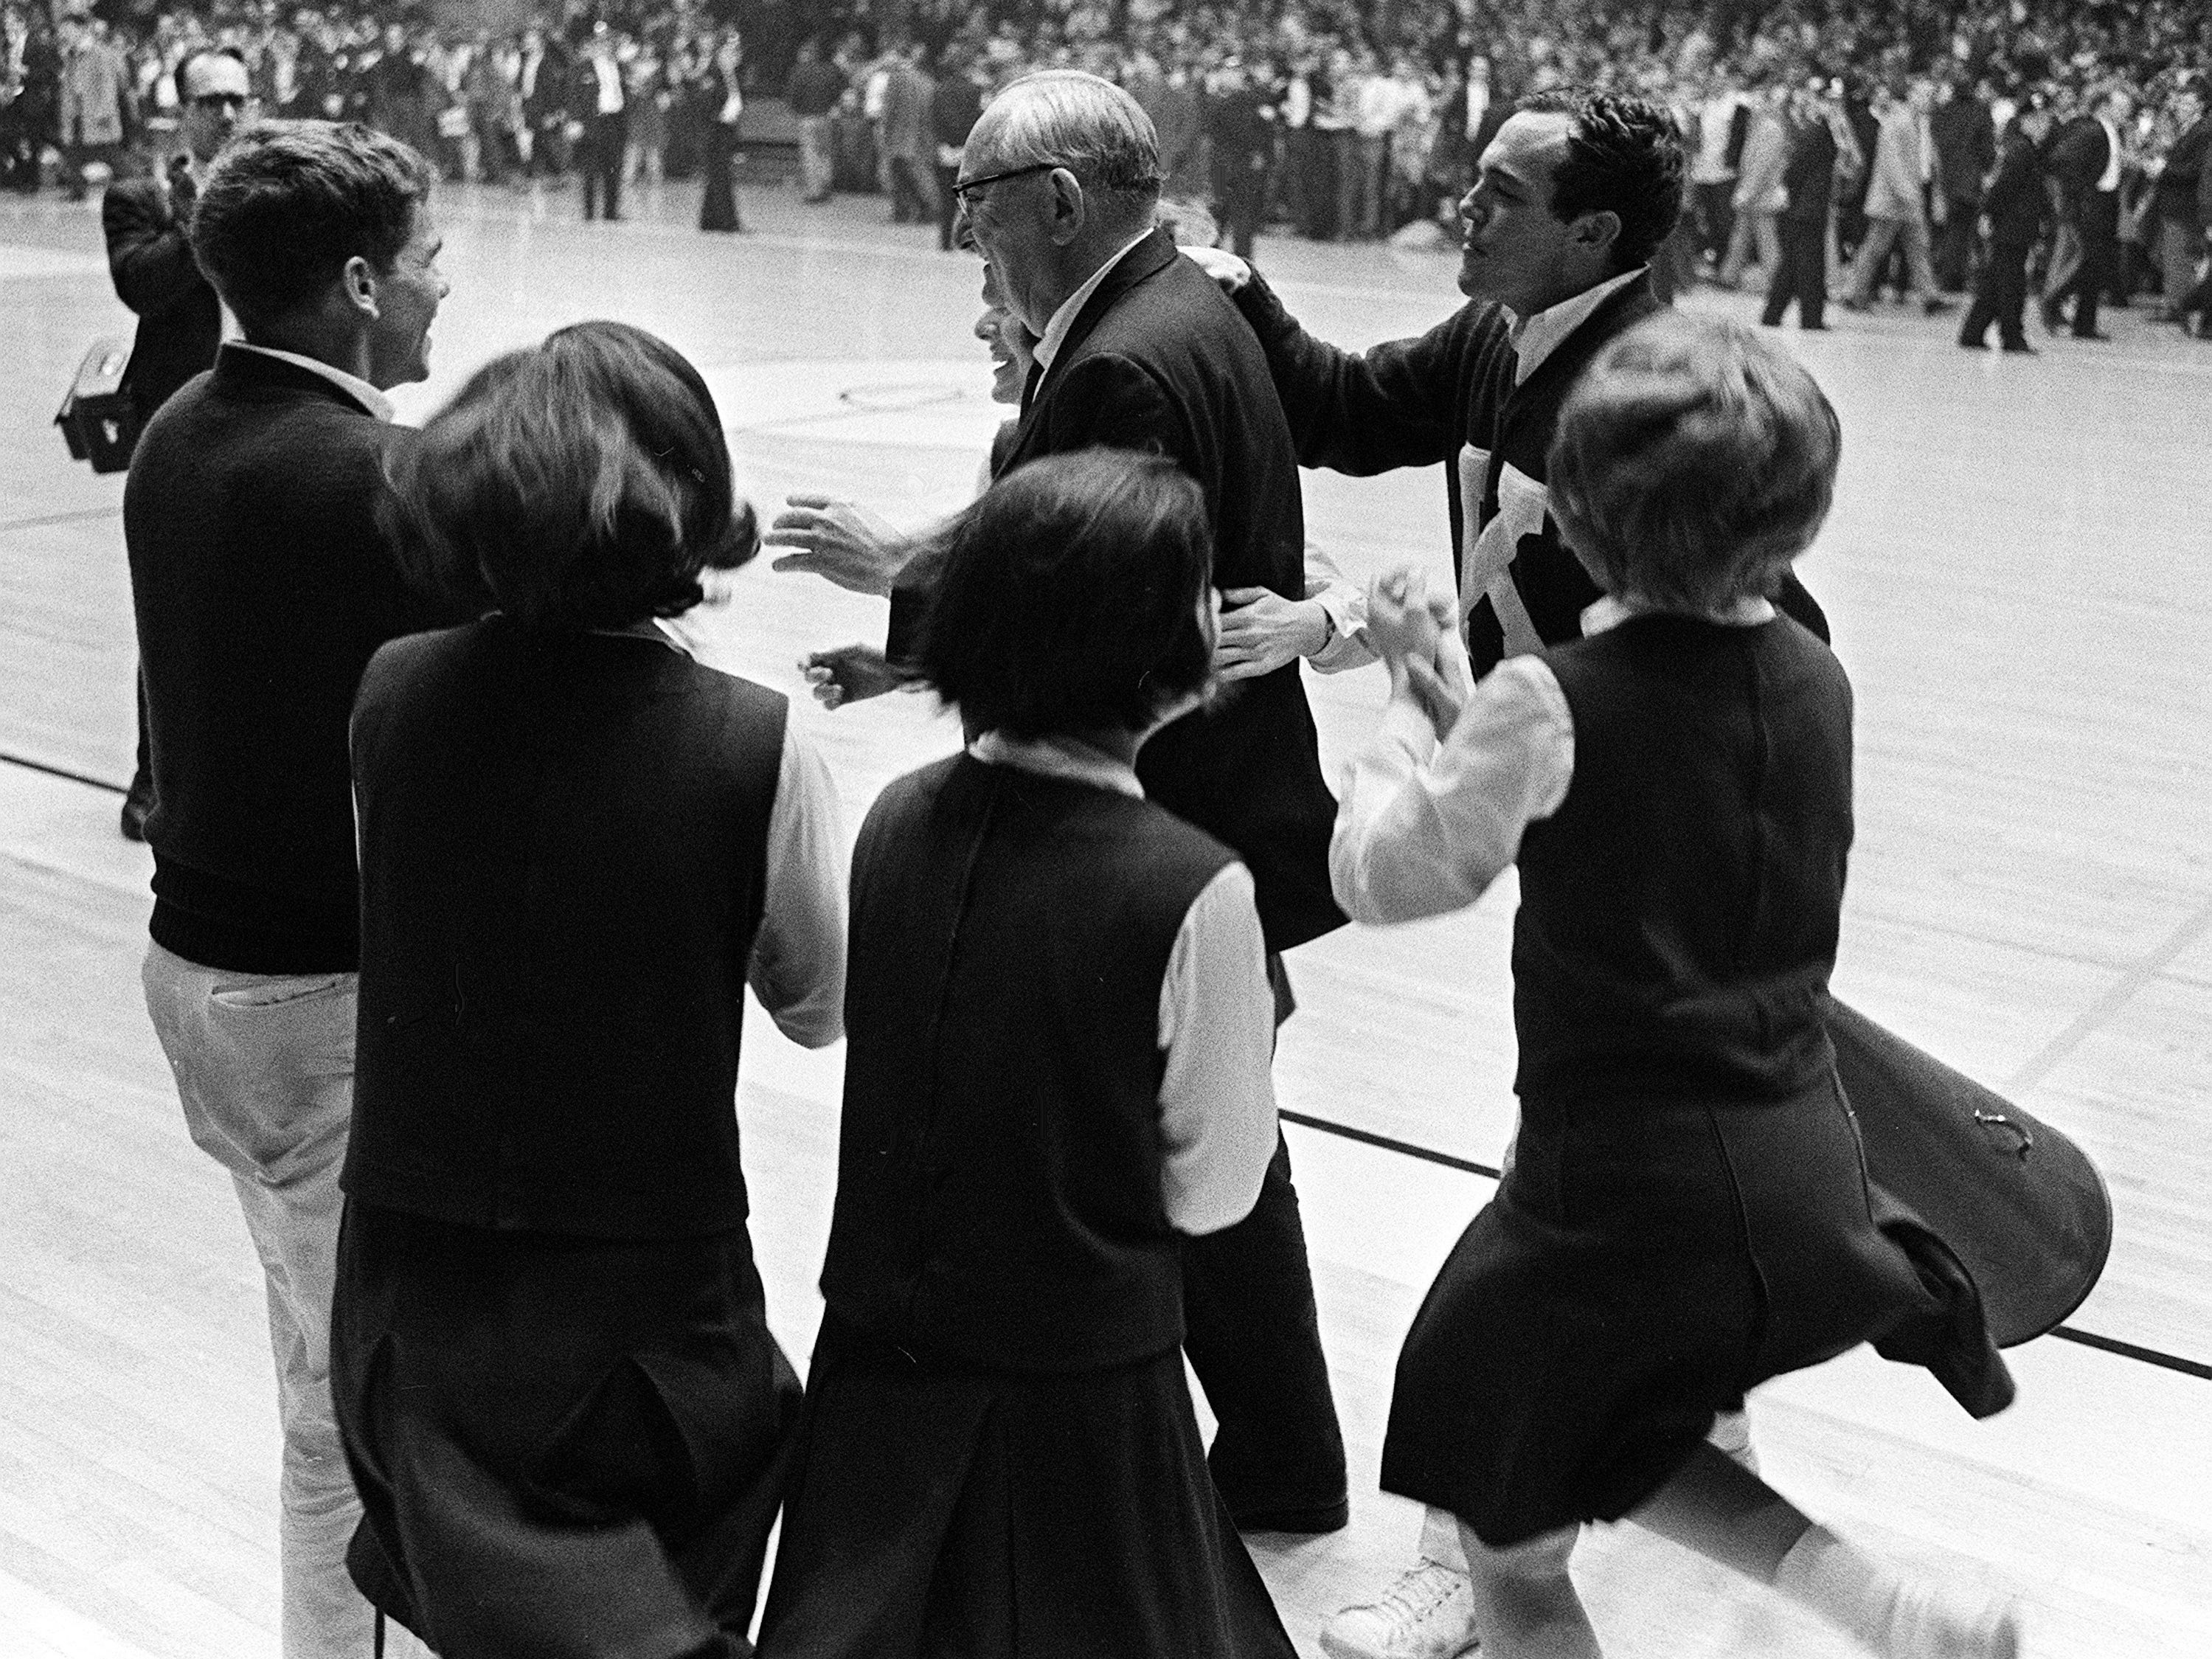 Kentucky head coach Adolph Rupp, center, gets help from the cheerleaders in celebrating their victory over Vanderbilt. The undefeated Wildcats won 105-90 over the Commodores before more than 9,500 fans Feb. 2, 1966.